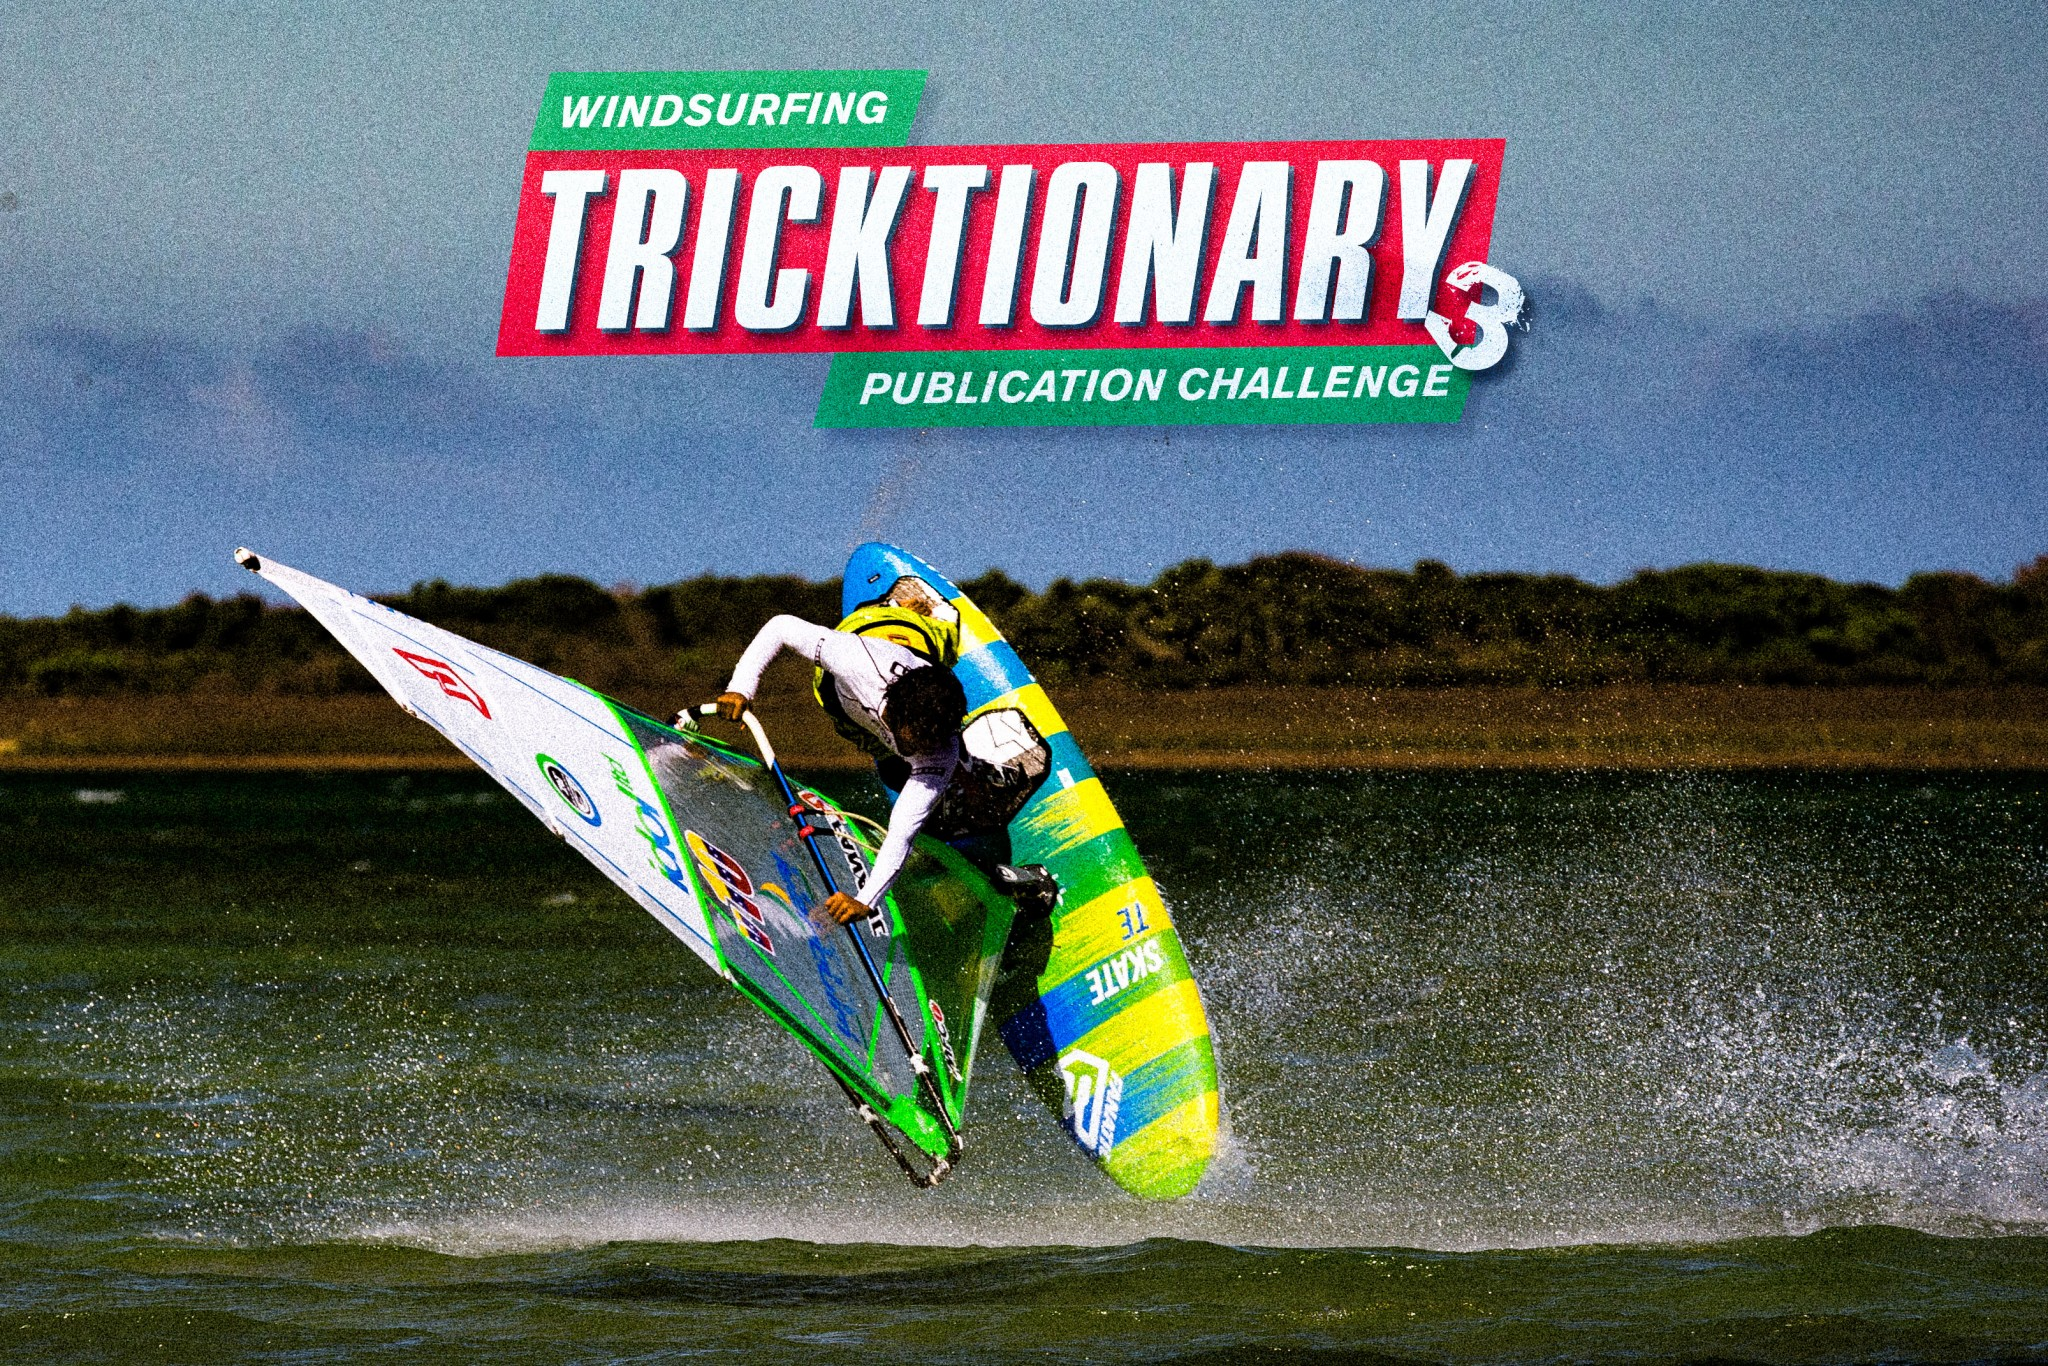 Tricktionary 3 publication challenge